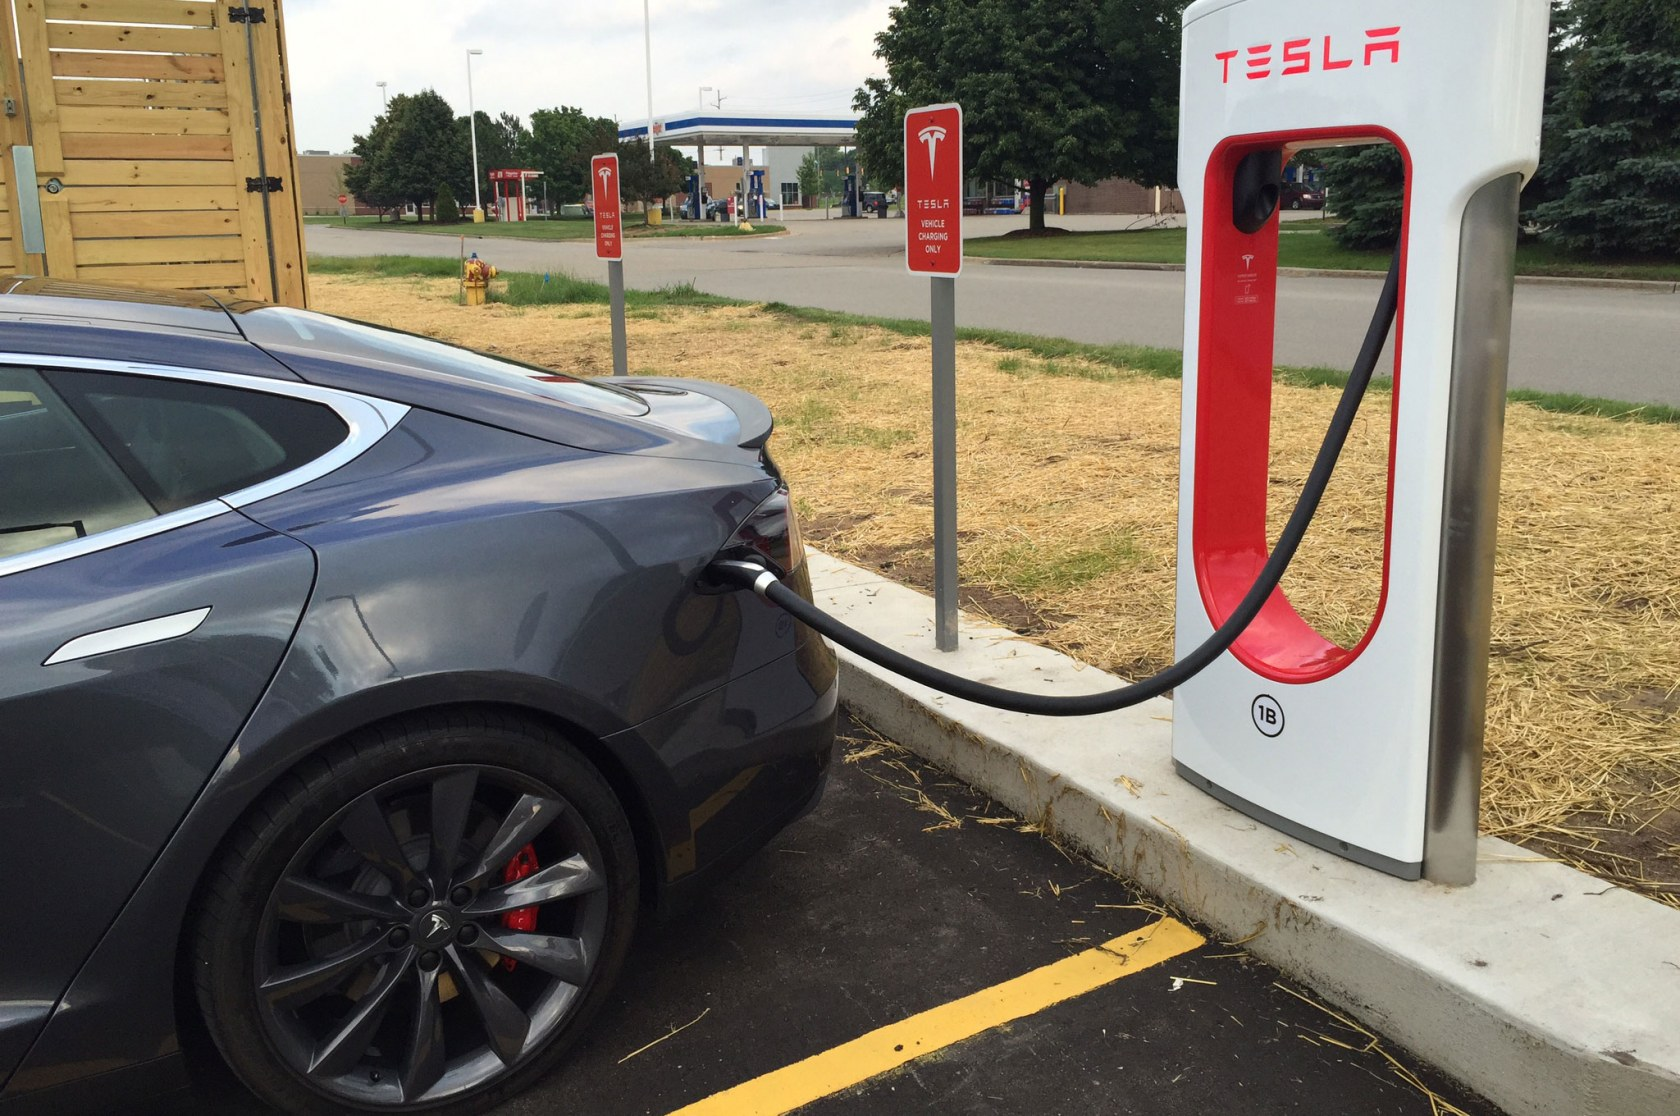 Tesla's new V3 Supercharger can add 75 miles in 5 minutes